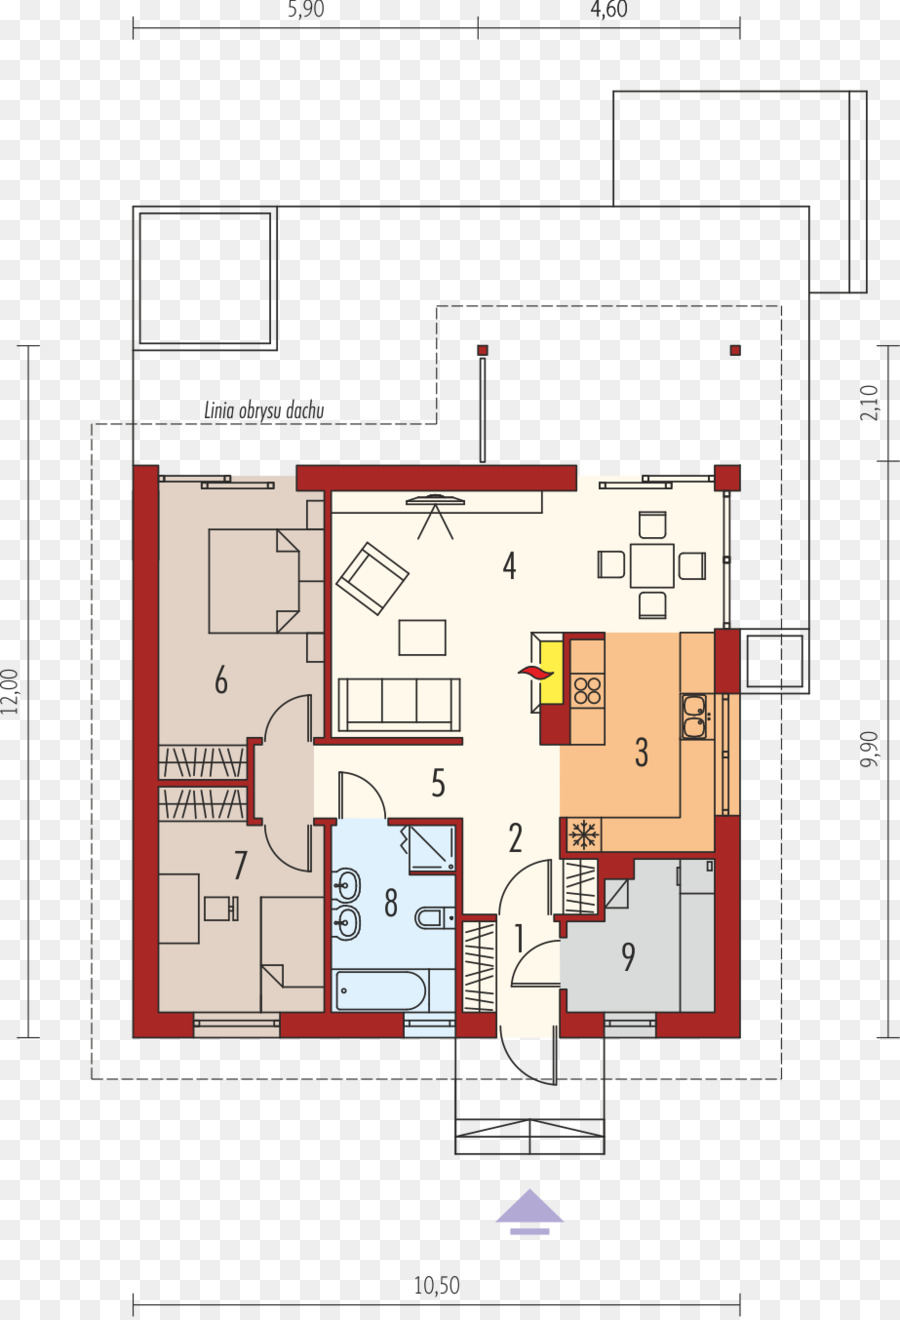 House Floor Plan png download - 923*1351 - Free Transparent House